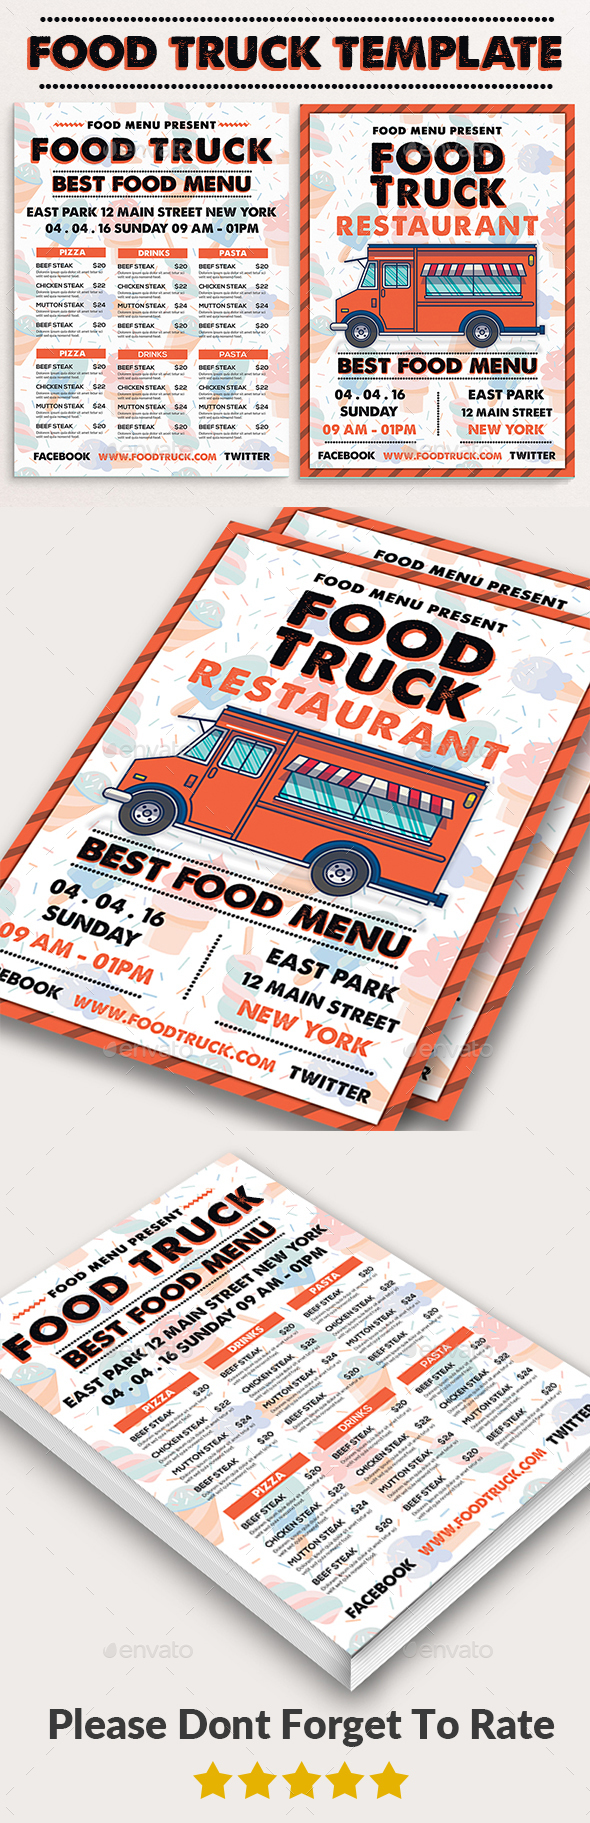 Food truck print templates by afjamaal graphicriver for Food truck menu design